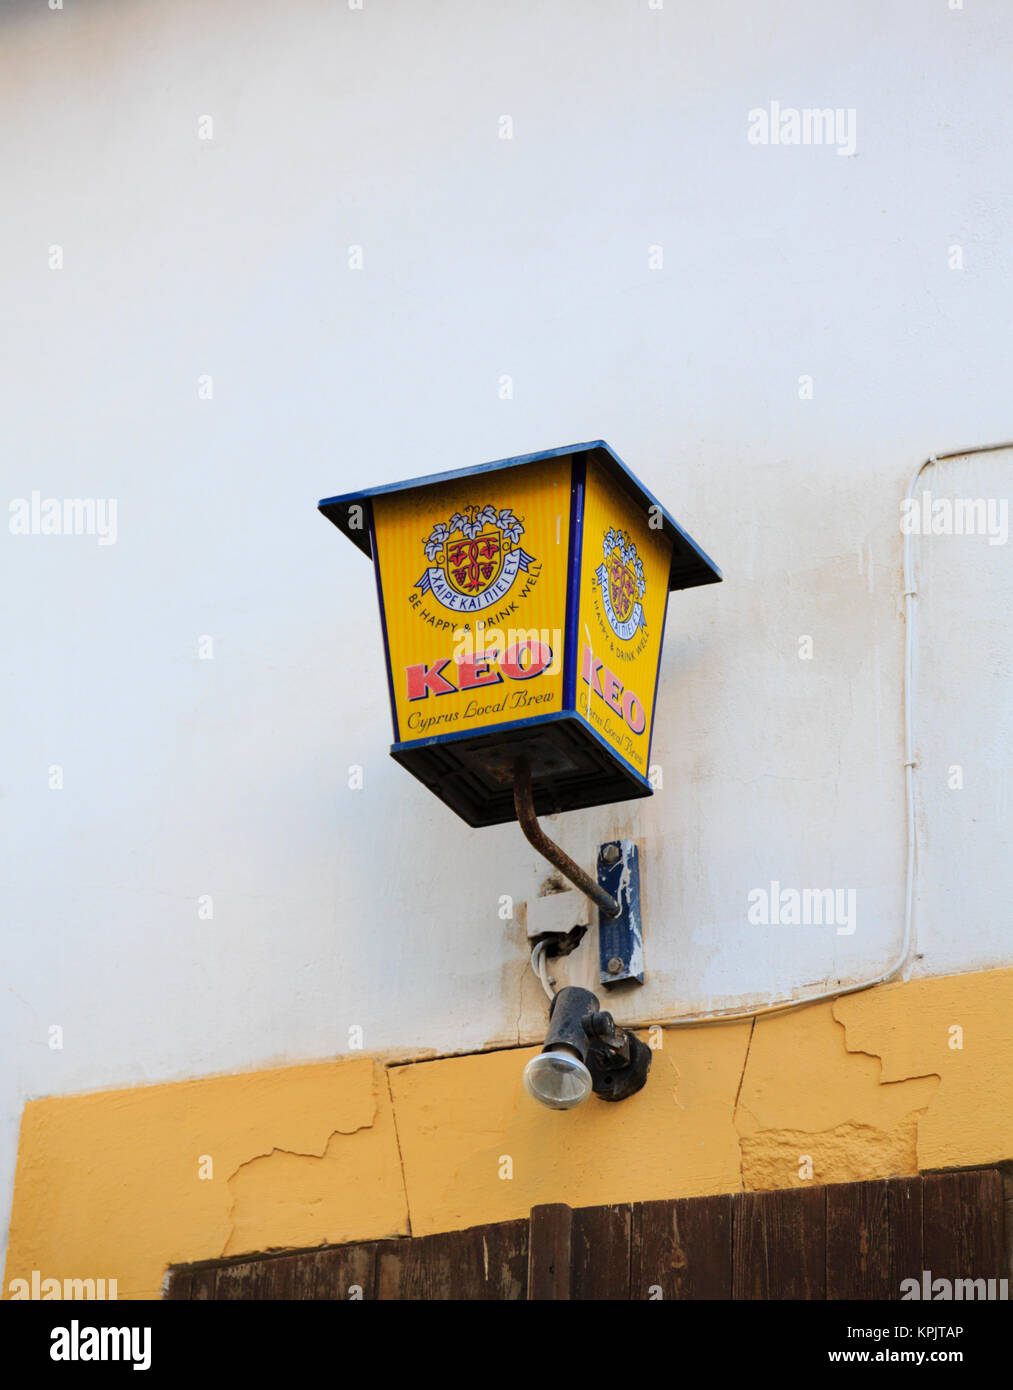 old-keo-bar-lantern-sign-larnaca-cyprus-